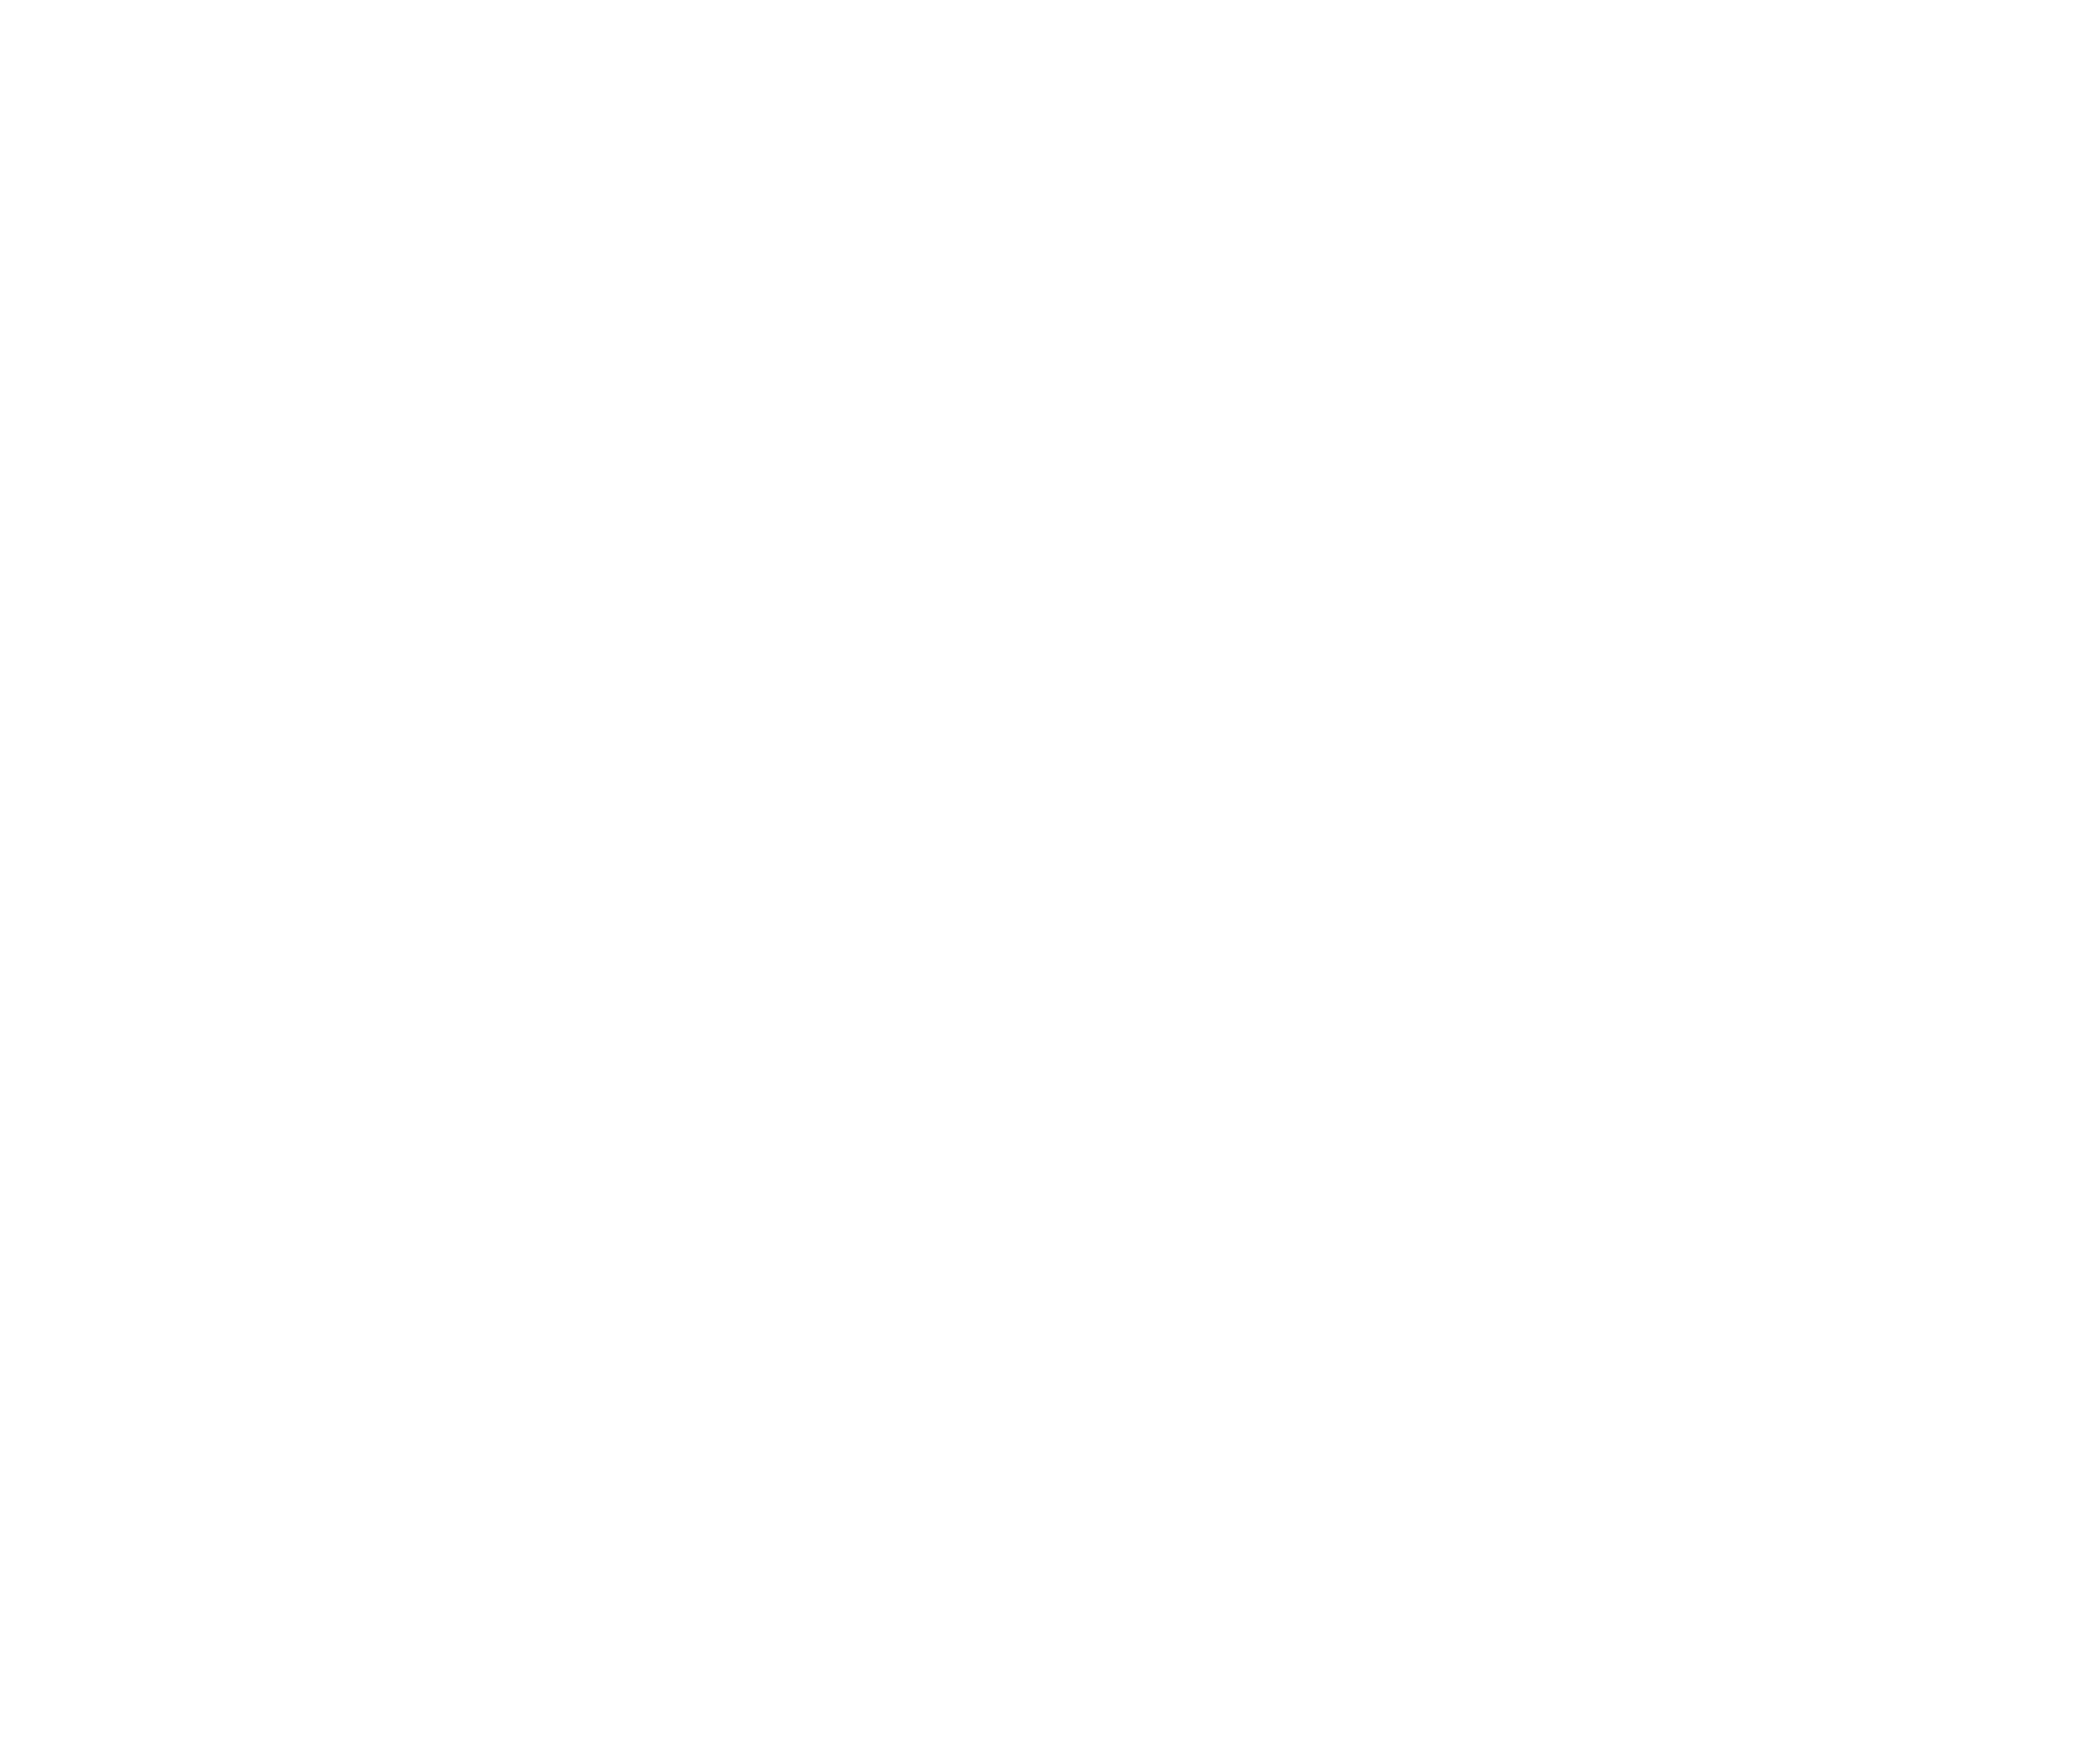 High Density diskette standard logo by adruki